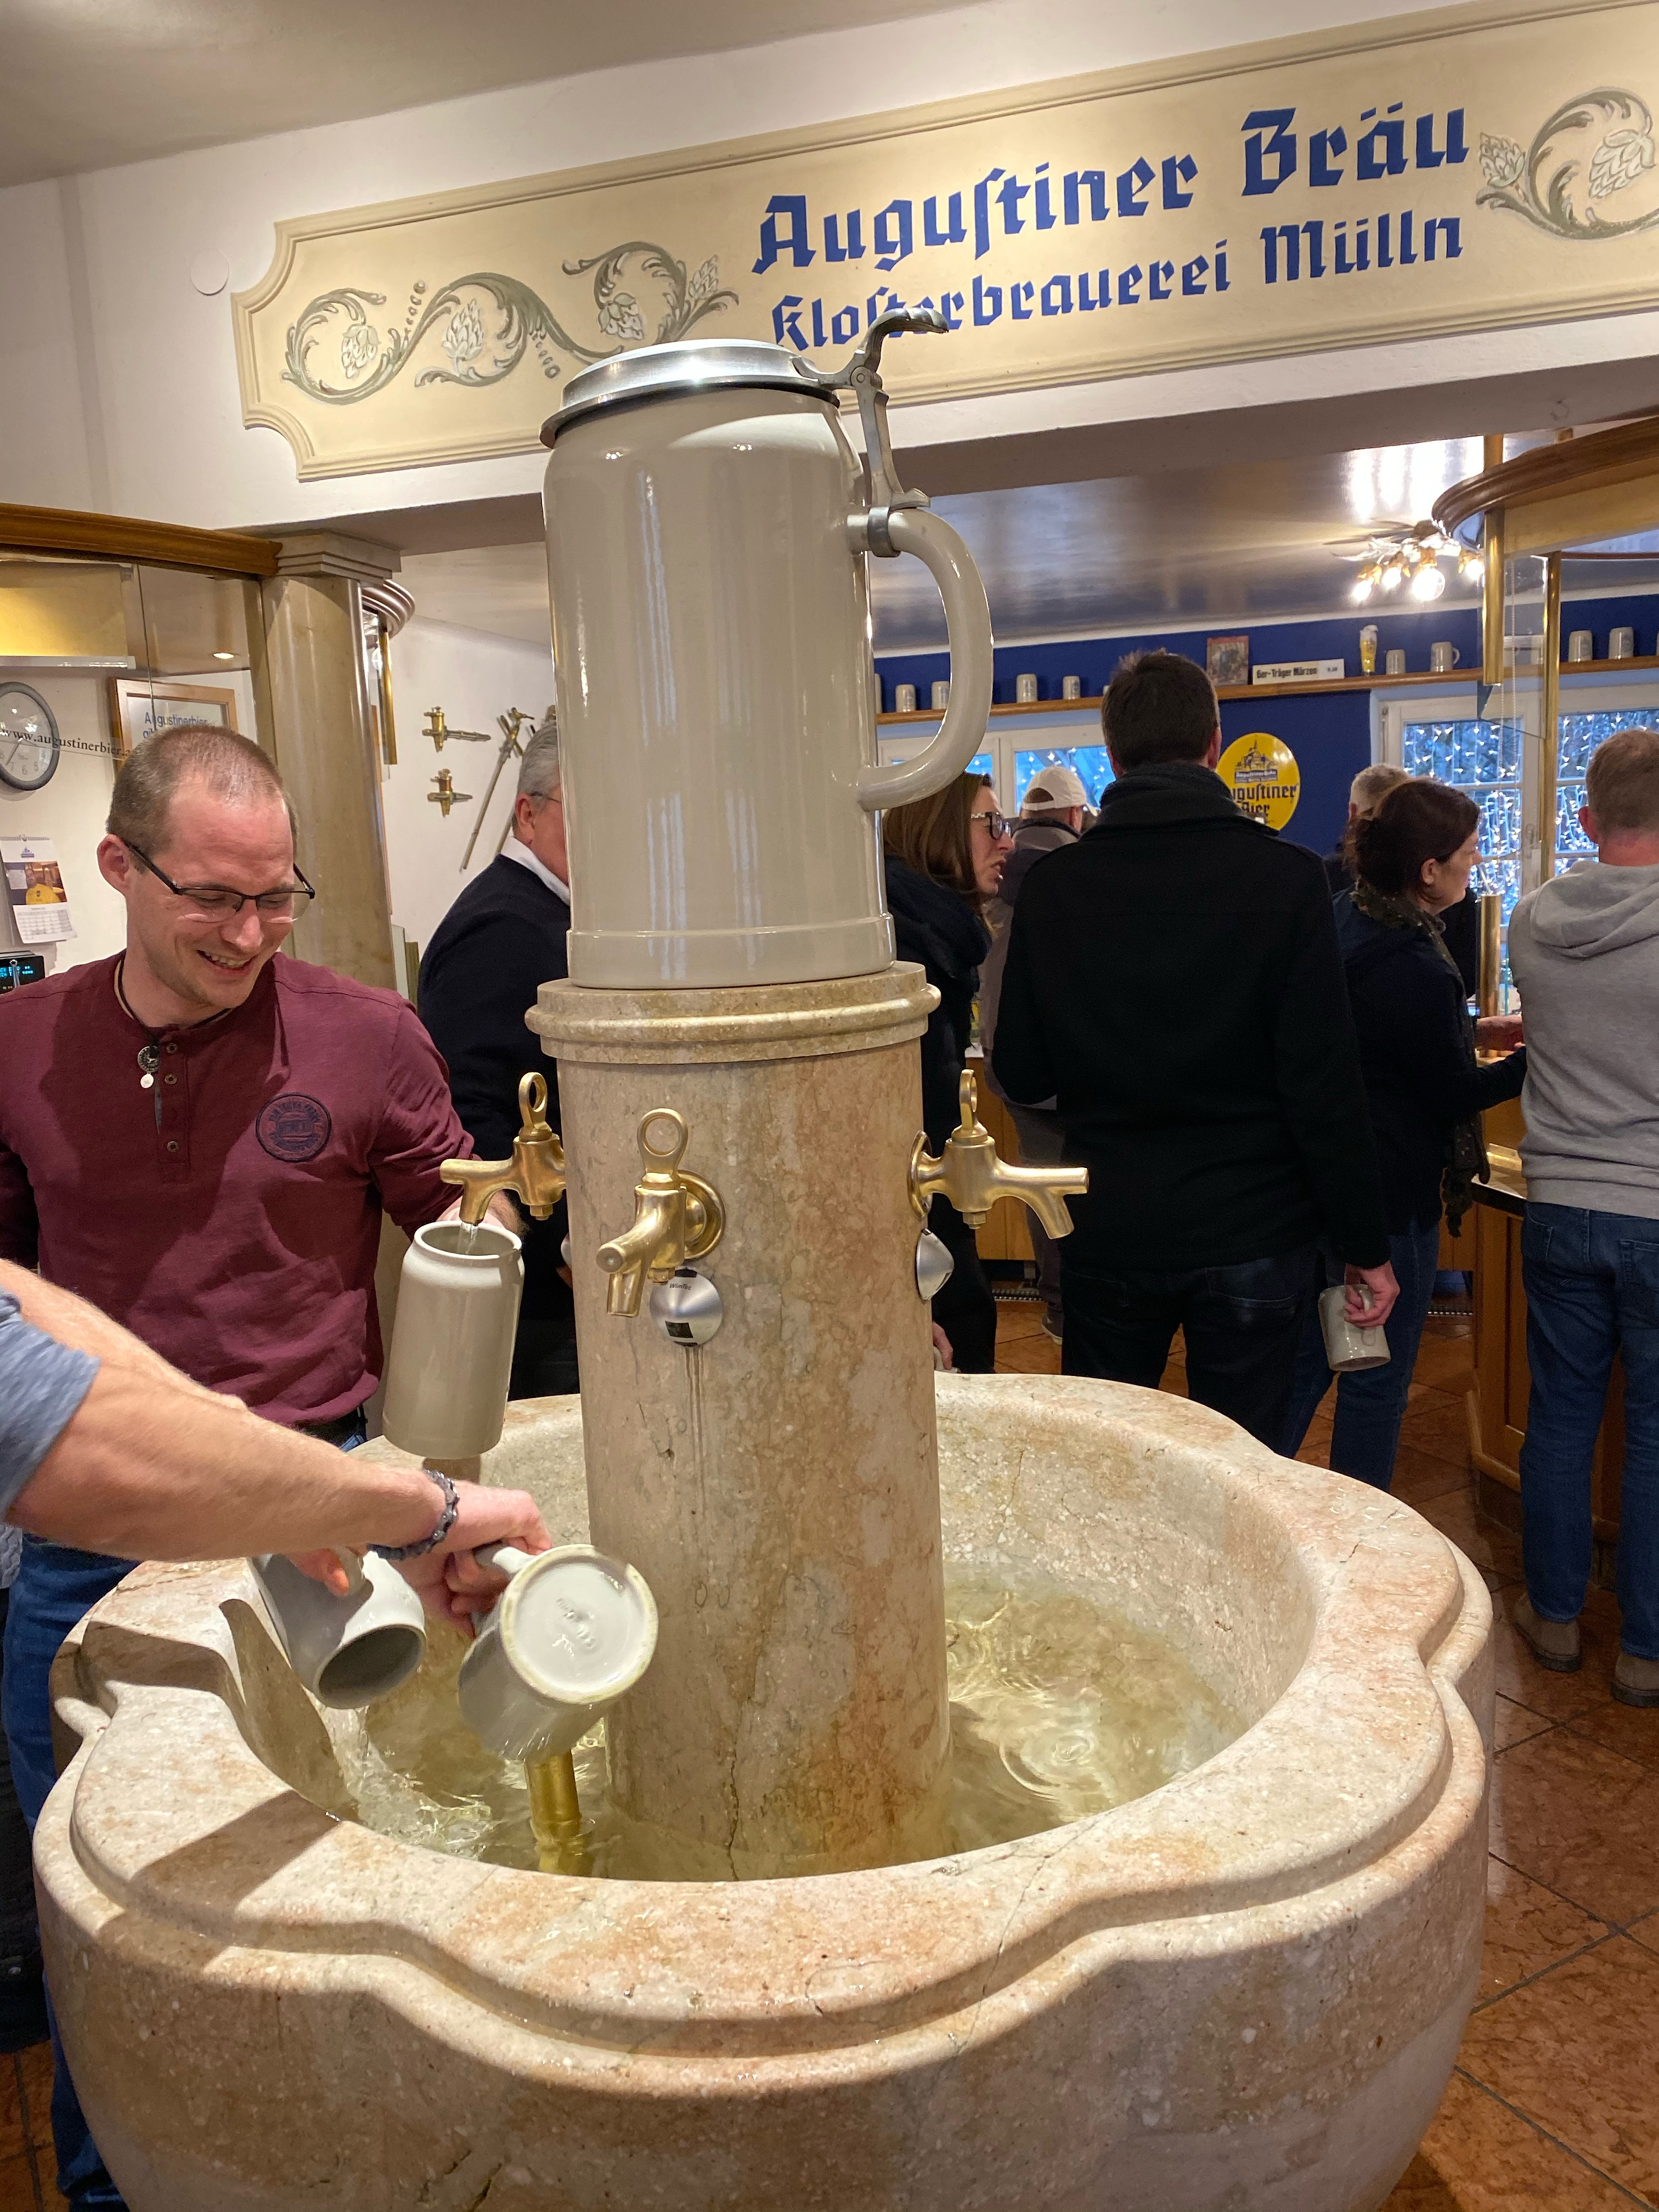 People rinsing cups with water before filling them with beer at Augustiner Bräu Kloster Mülln.